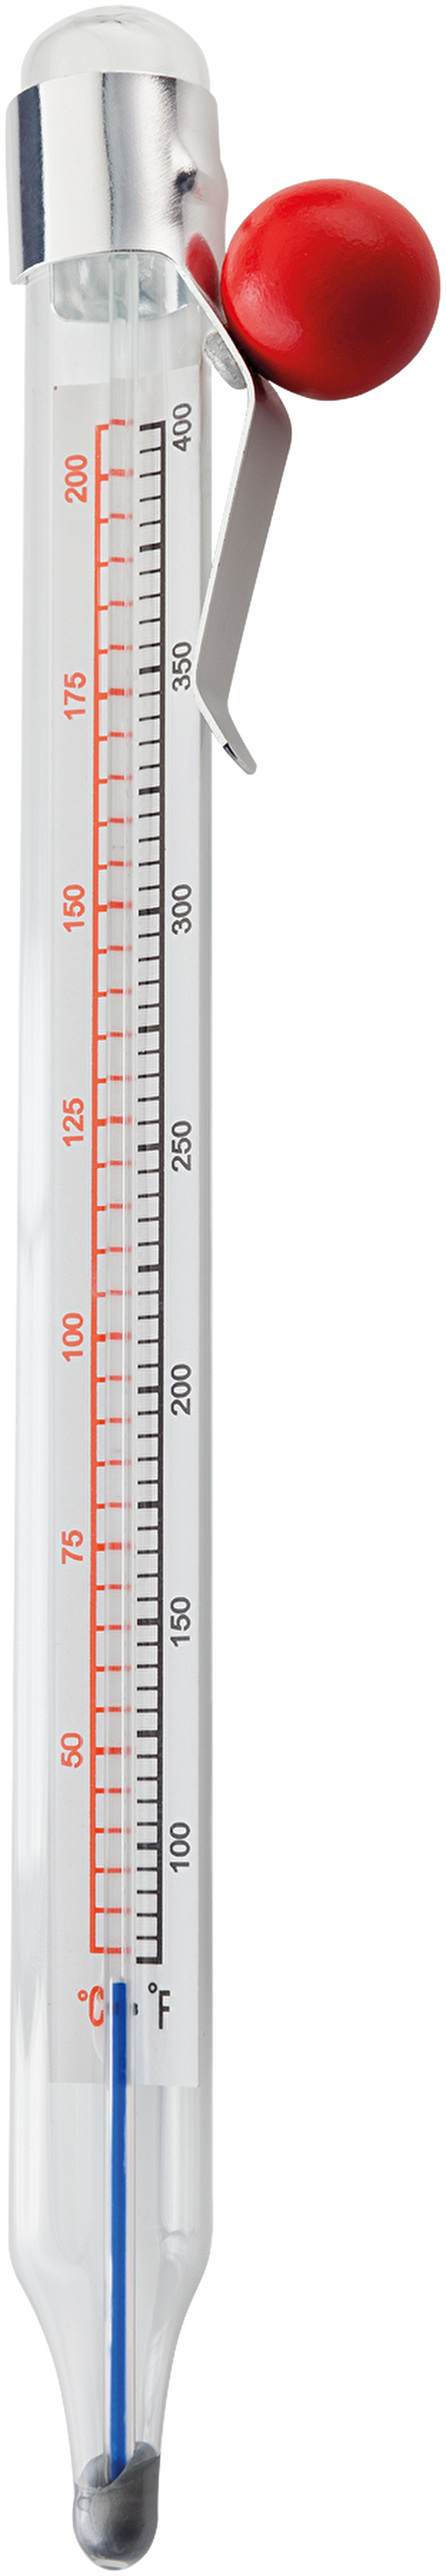 Judge Kitchen  Preserving Thermometer,